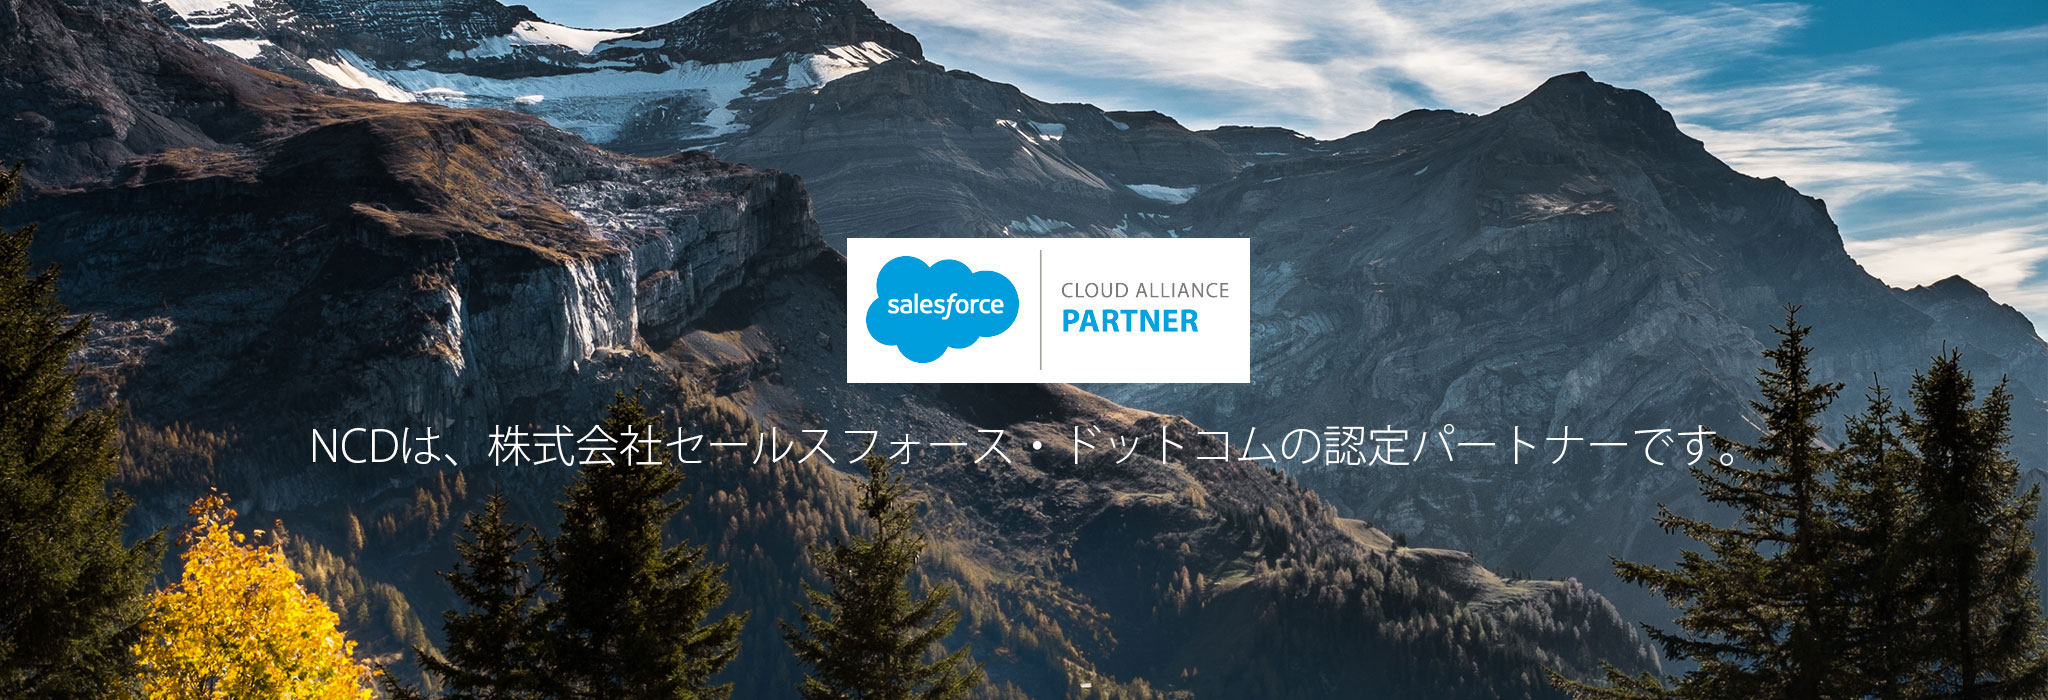 CLOUD ALLIENCE PARTNER